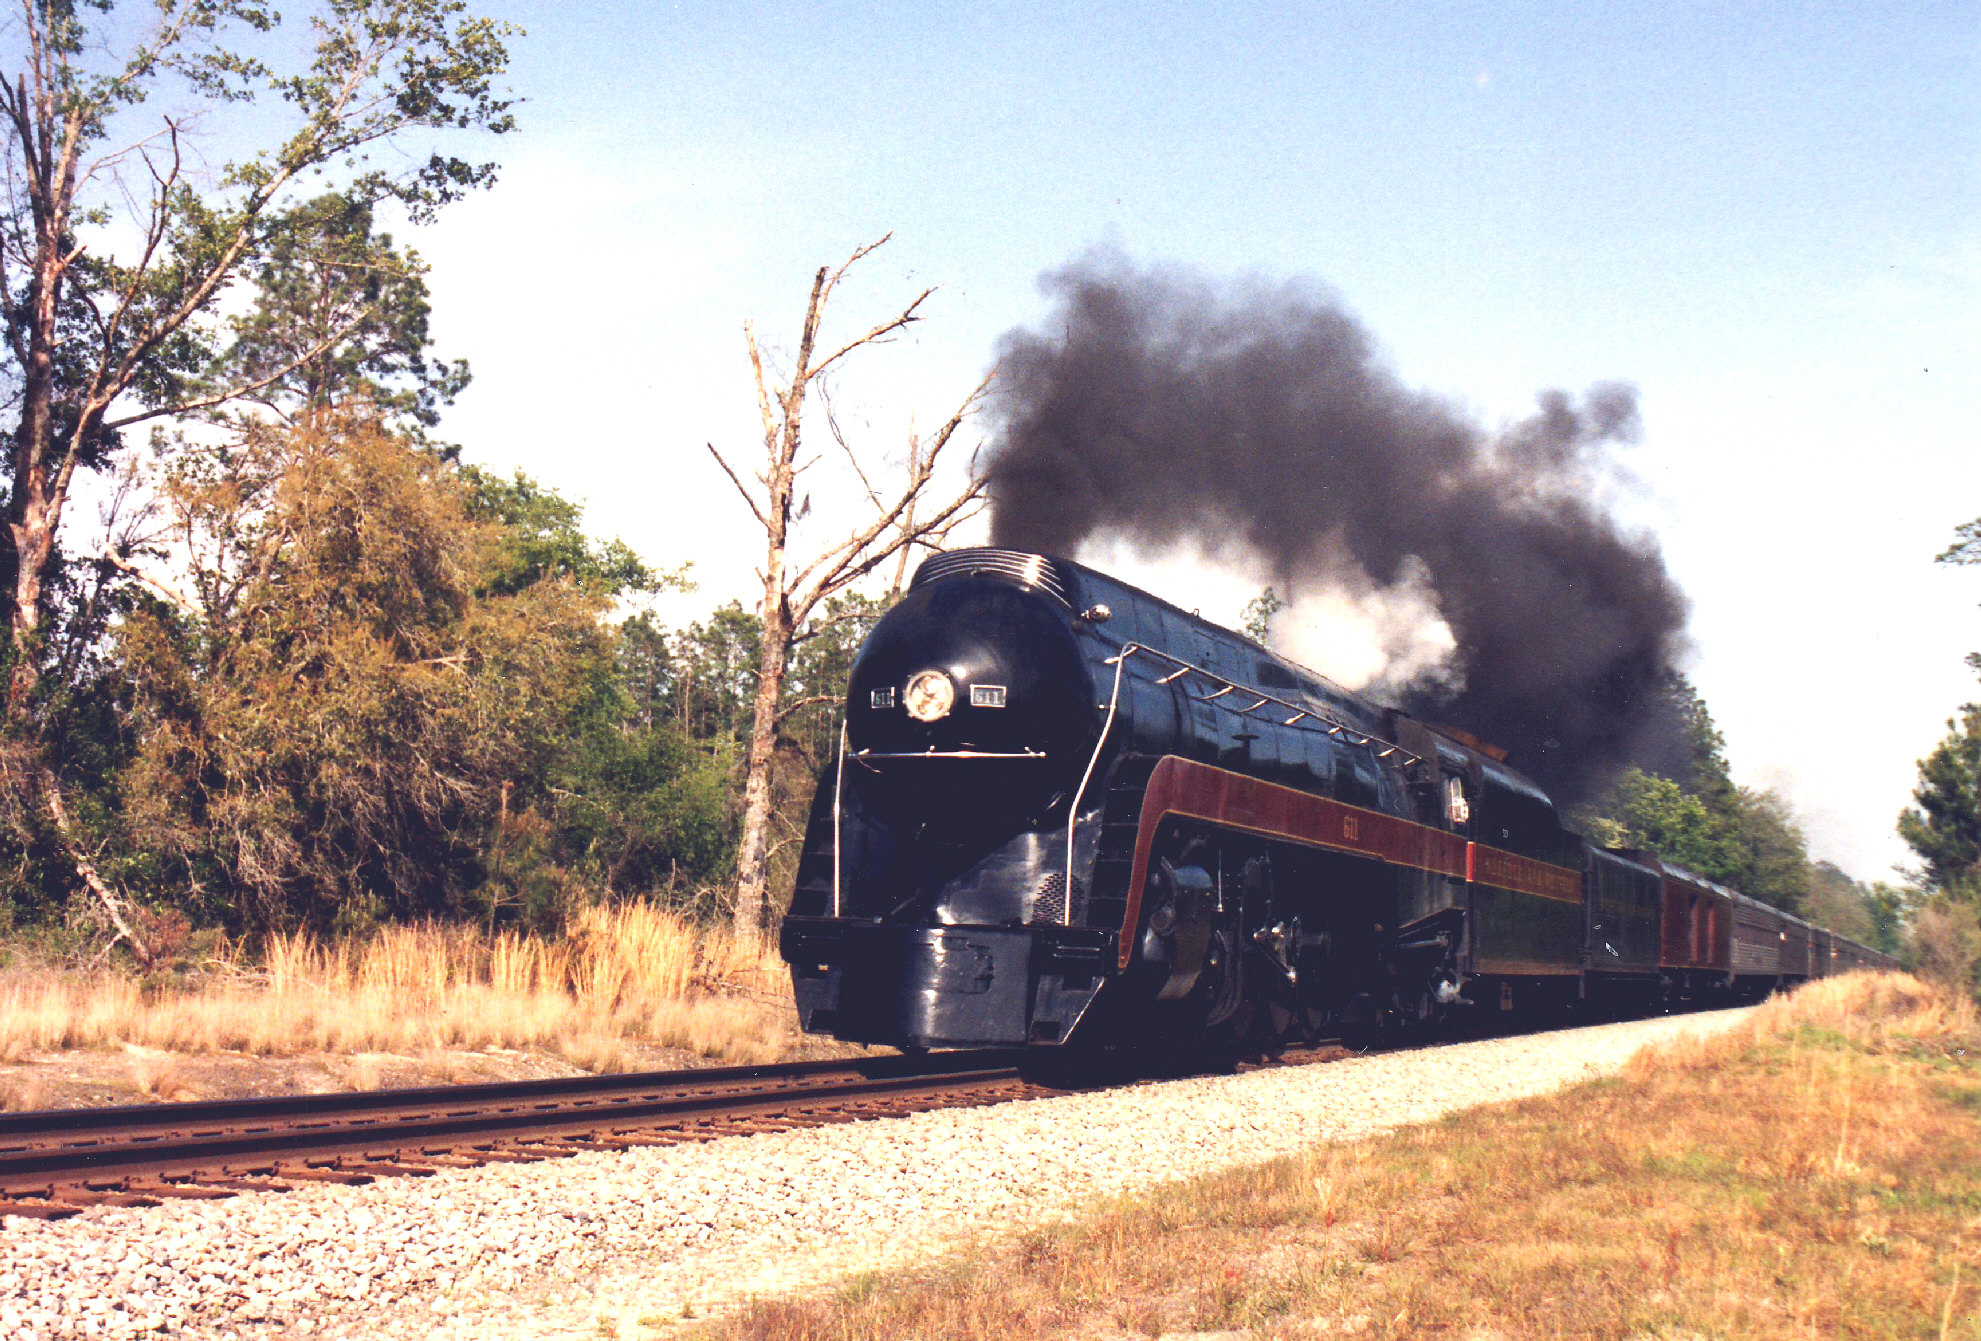 File:Norfolk and Western 611.jpg